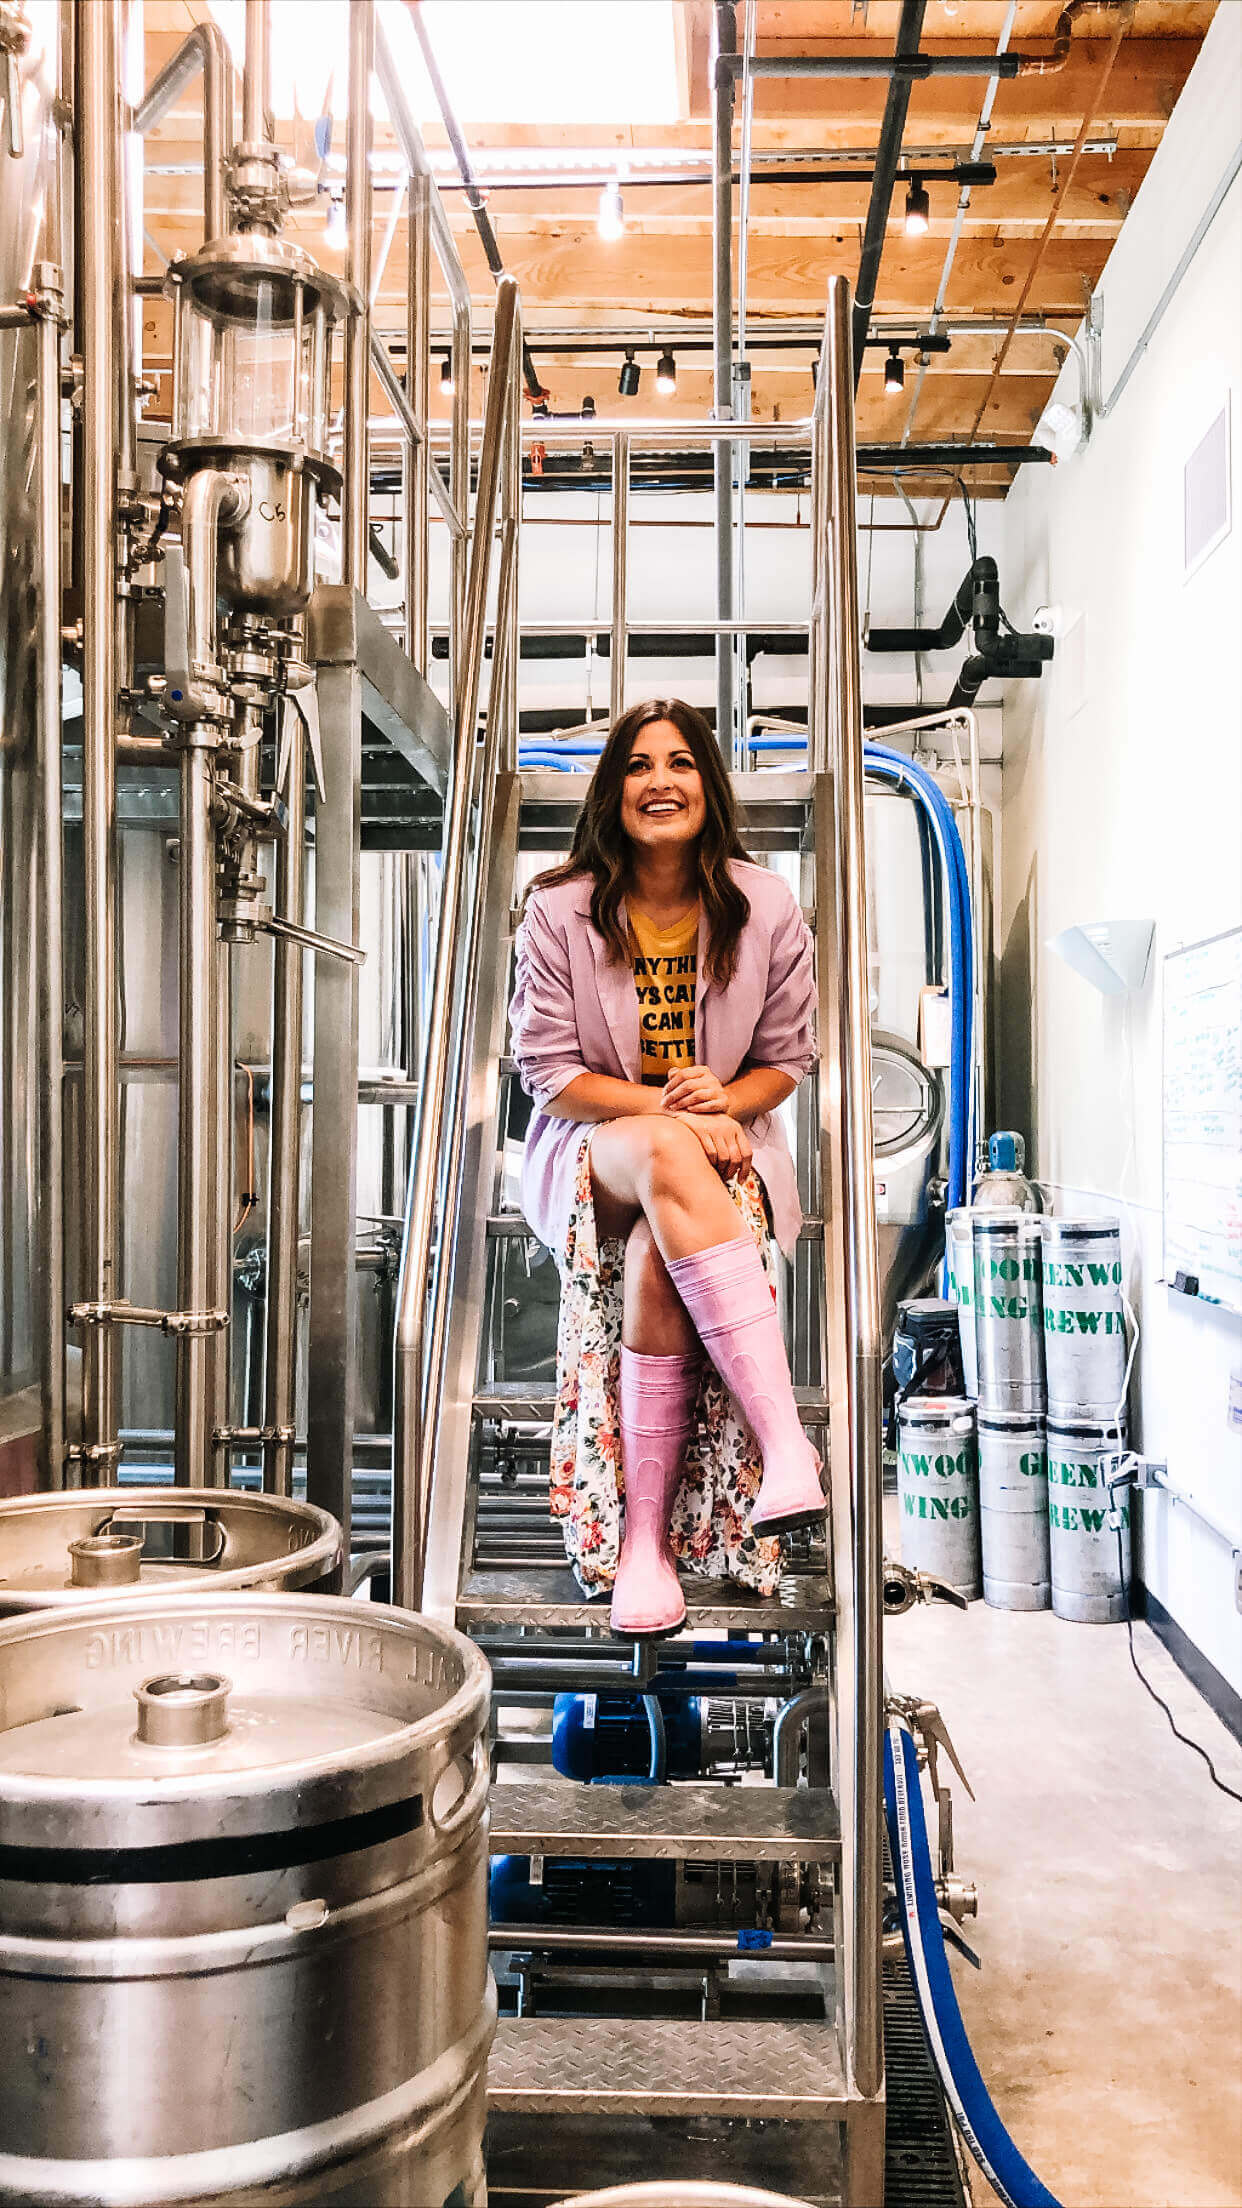 Megan Greenwood Arizona's Only Woman-Owned Brewery